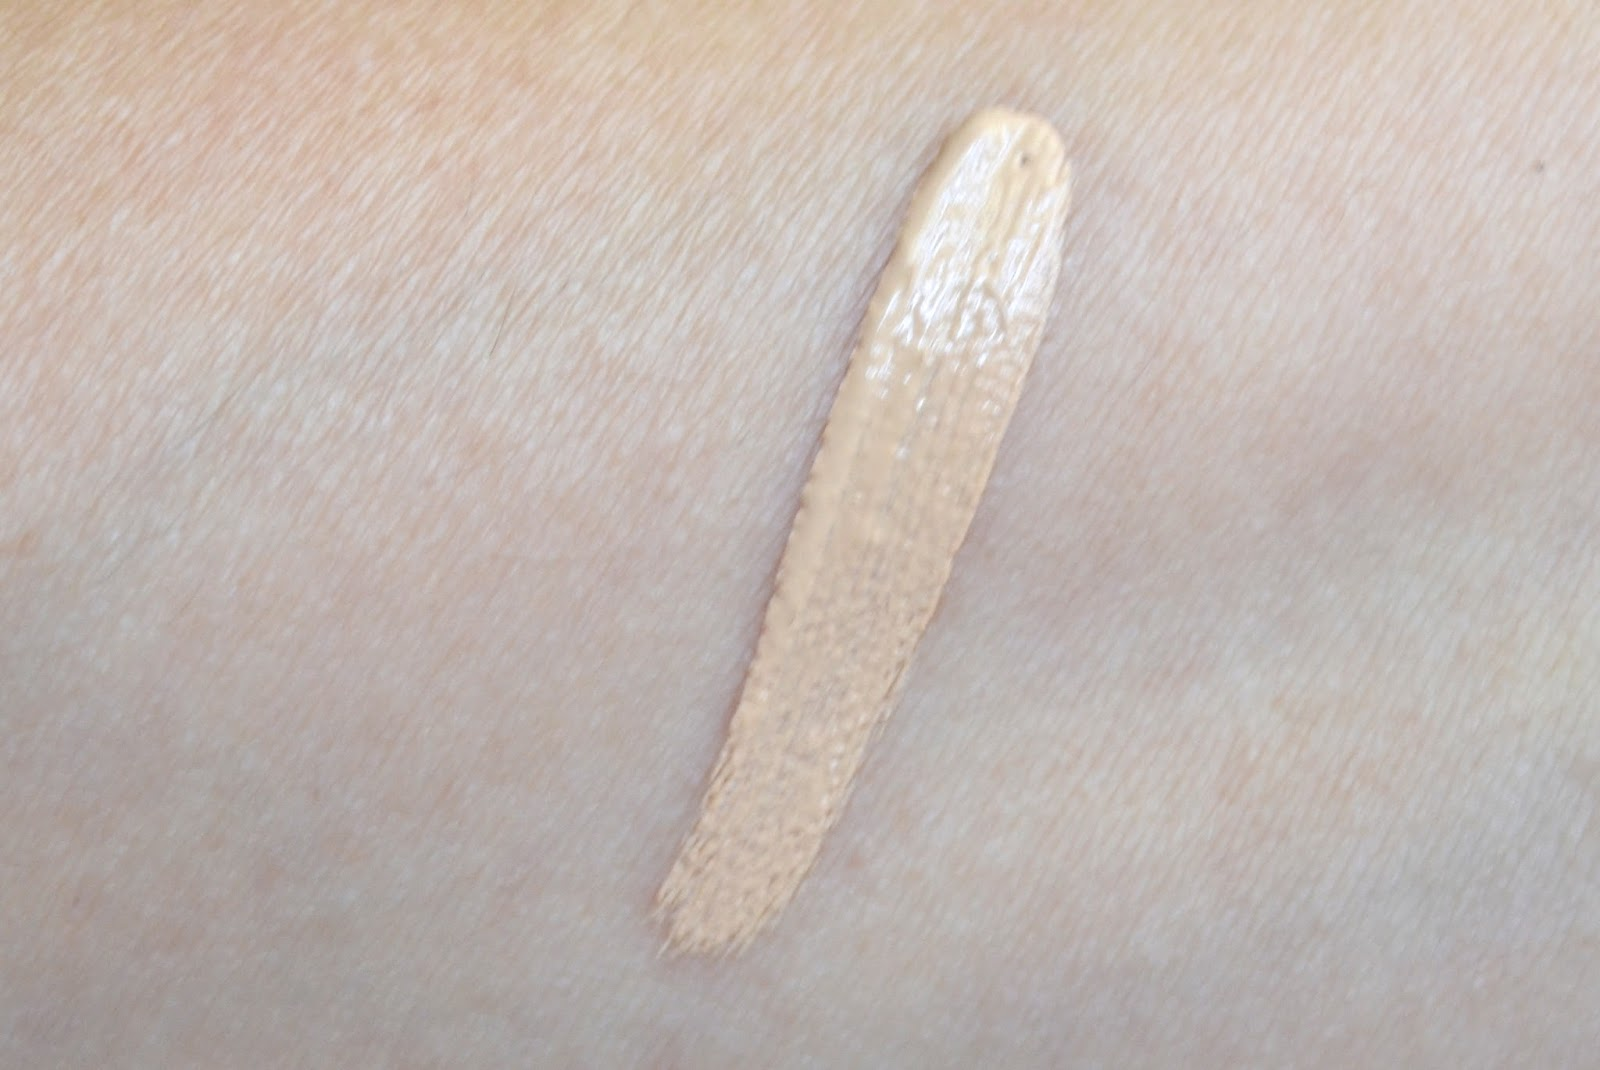 Aquaheart: Maybelline Superstay Better Skin Concealer - Review